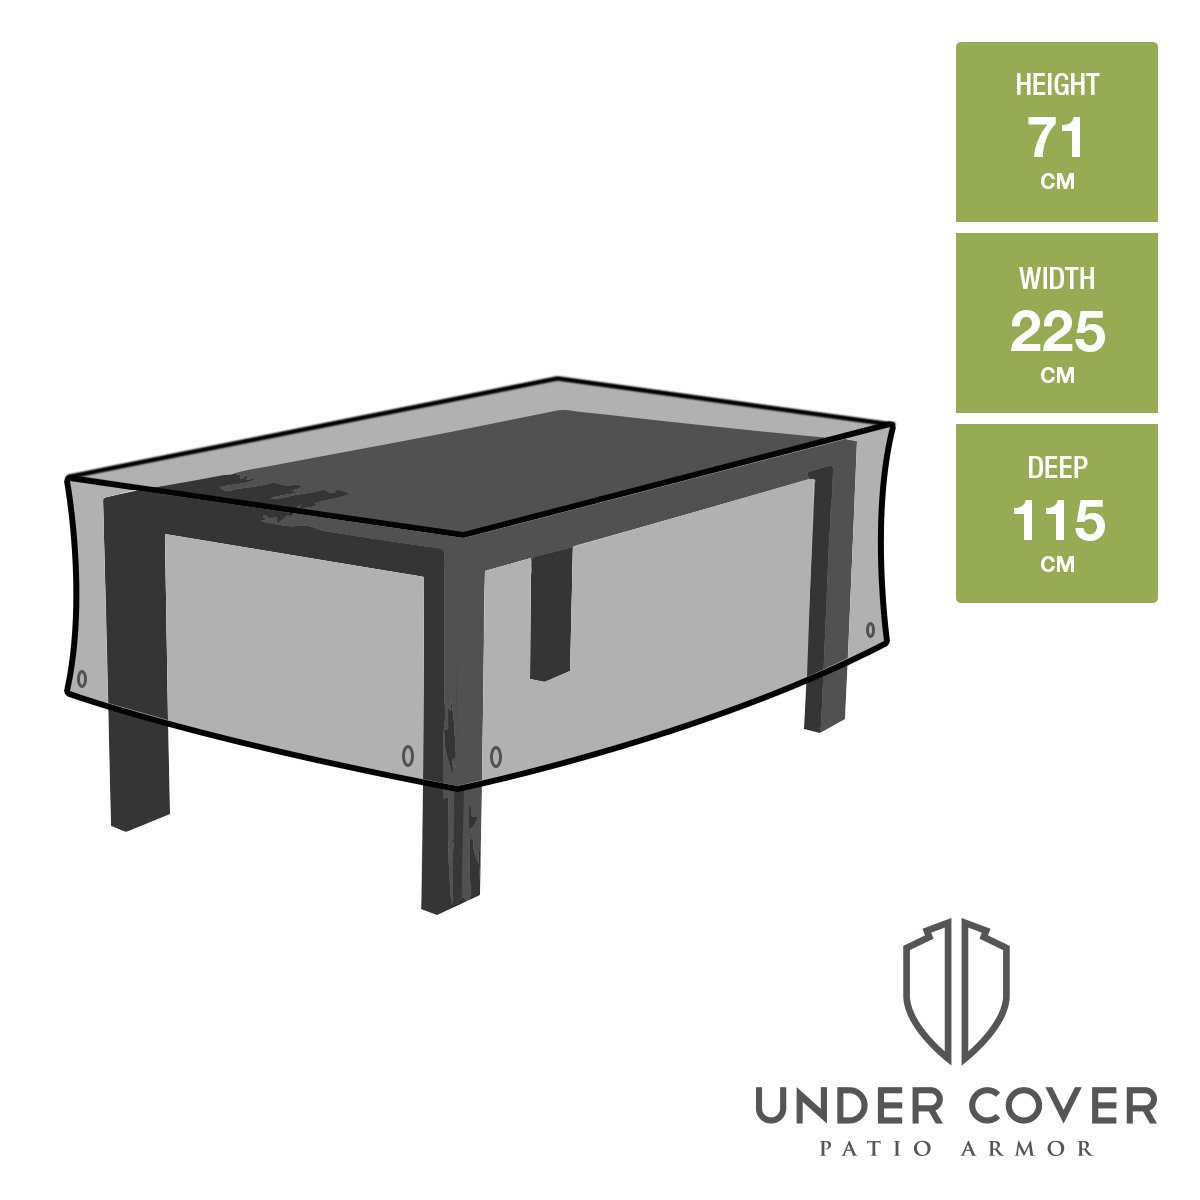 Lovely Rectangular Patio Table Cover, Extra Large   Strong And Durable, Premium  High Grade Waterproof UV Furniture Cover   Stone Grey   Toughest On Amazon:  ... Part 18